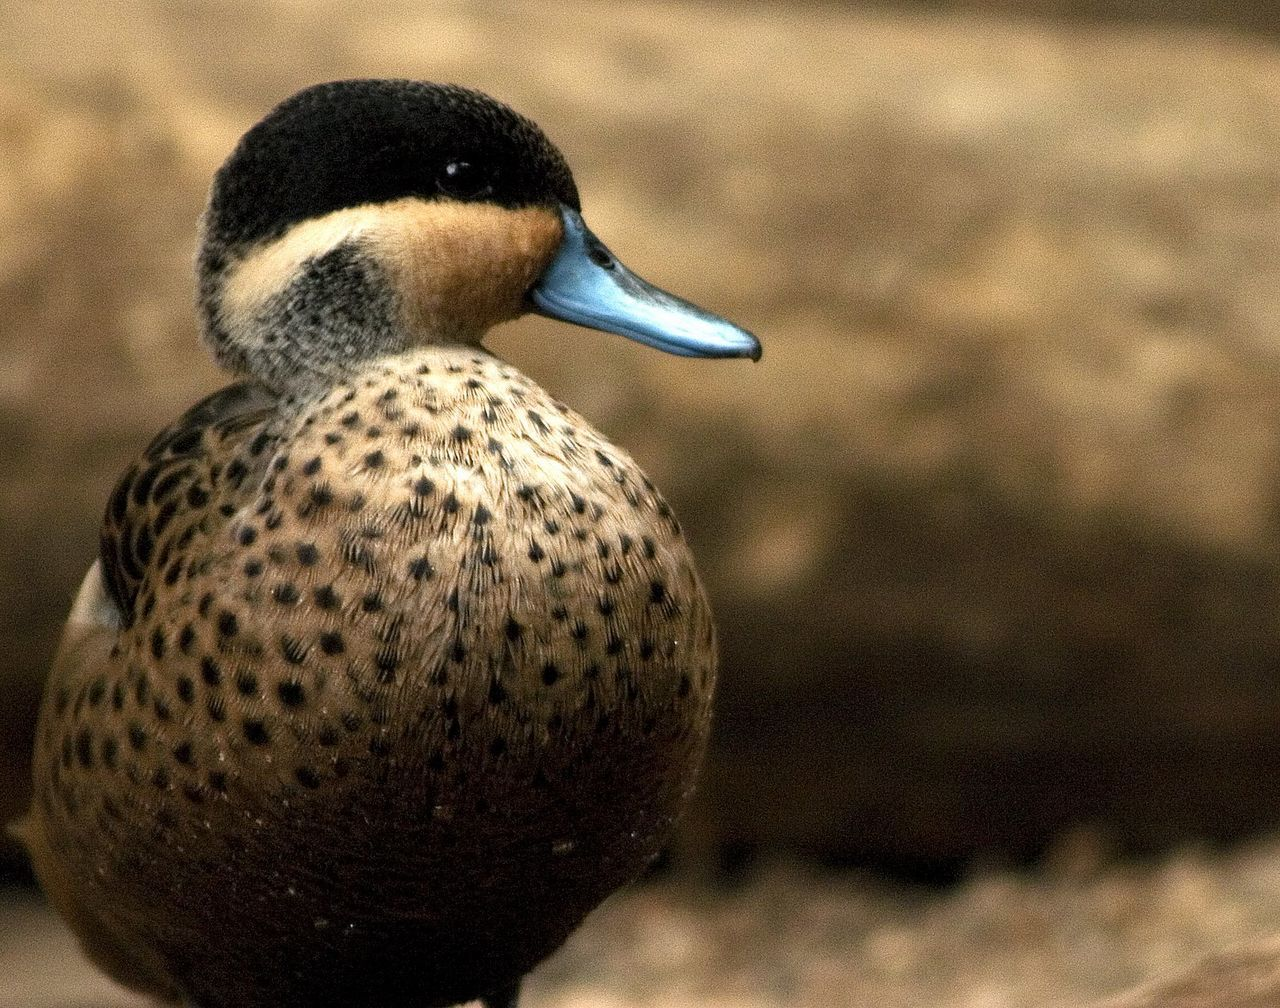 Animal Themes Animal Wildlife Animals In The Wild Beak Bird Close-up Day Duck Focus On Foreground Nature No People One Animal Outdoors